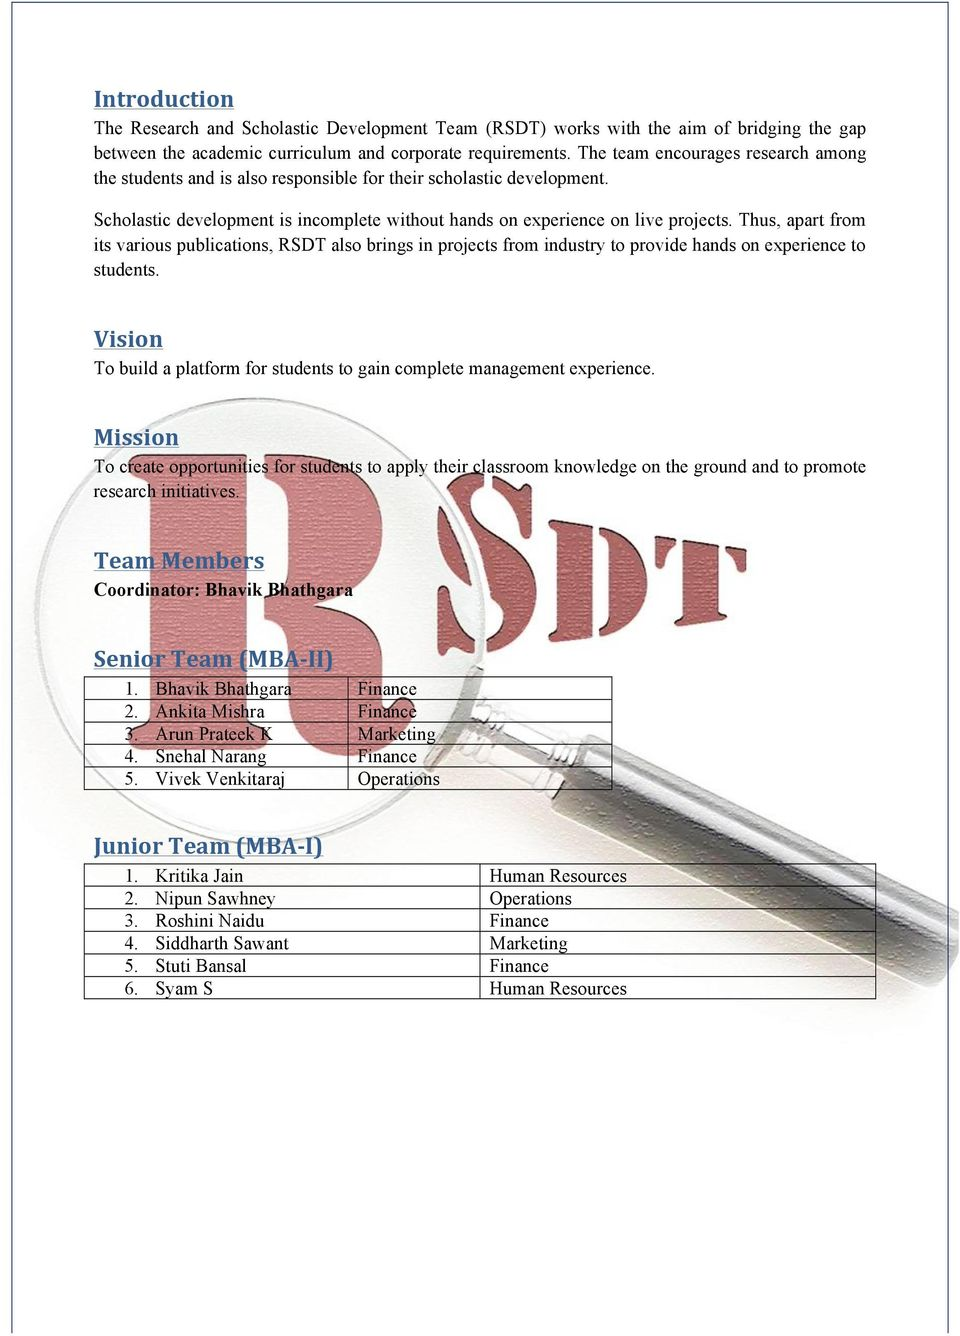 Thus, apart from its various publications, RSDT also brings in projects from industry to provide hands on experience to students.